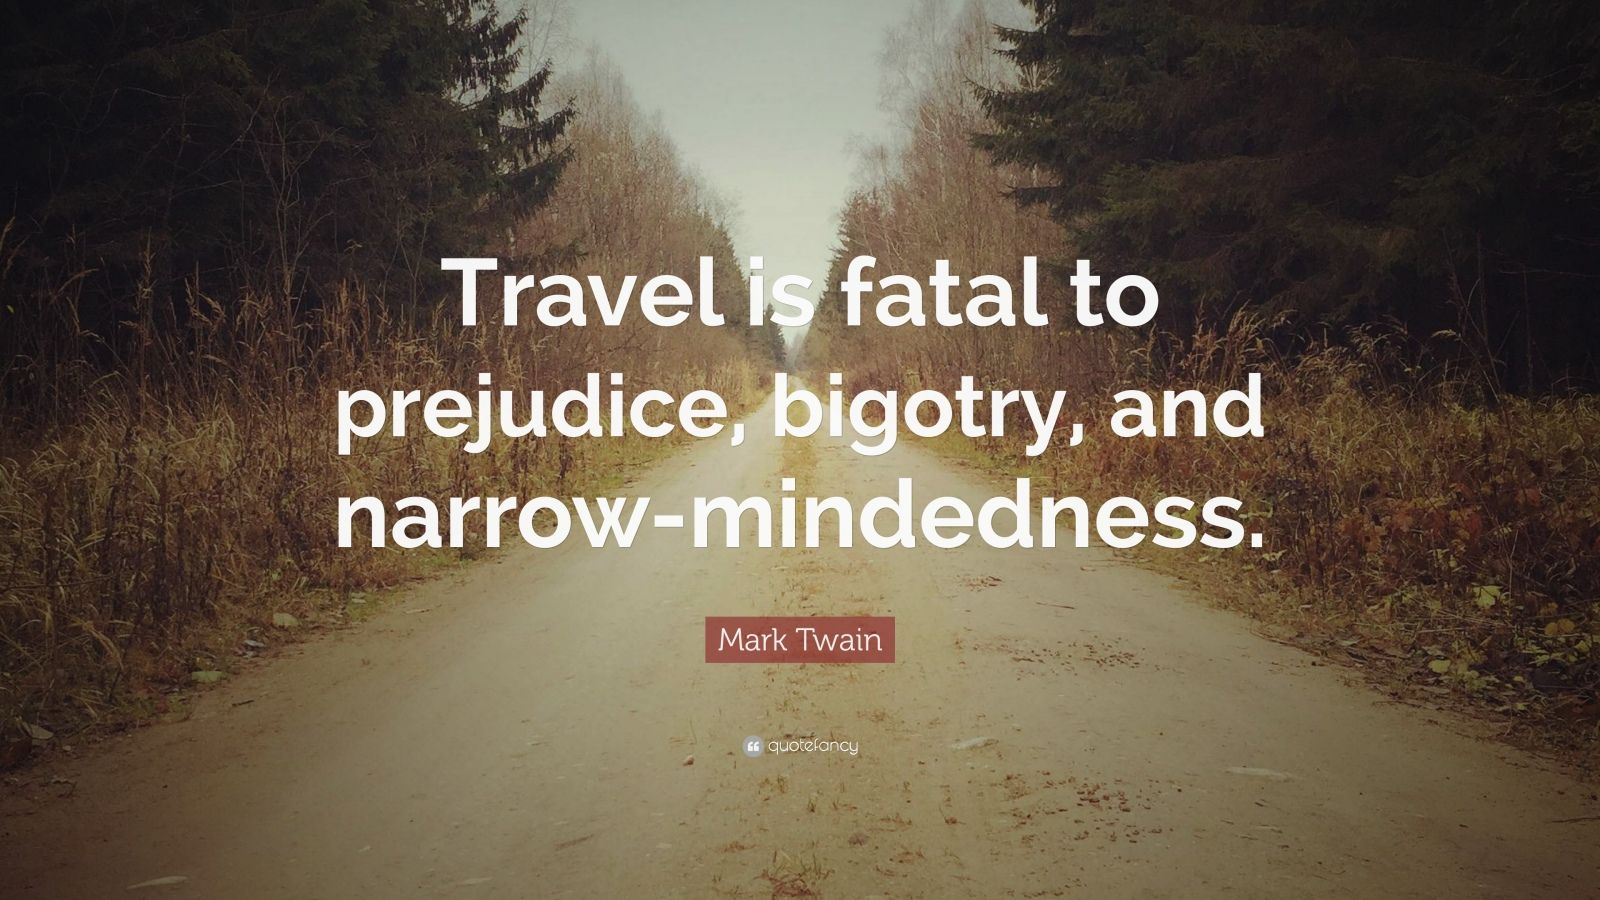 quote mark twain travel fatal prejudice bigotry narrow mindedness many